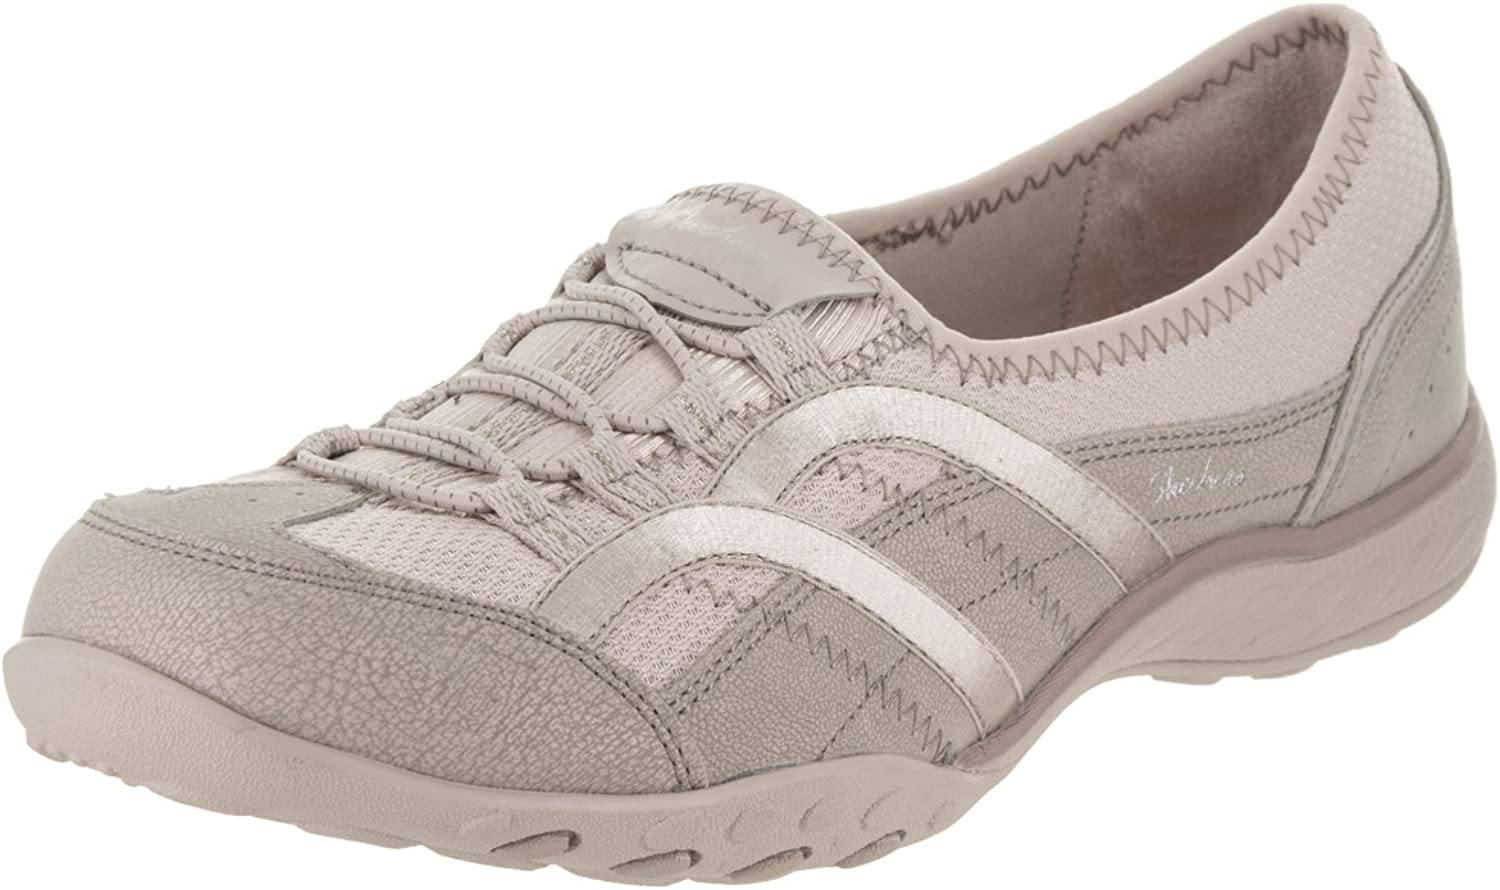 Skechers Women's Breathe-Easy - Well Versed (Wide) Casual shoes